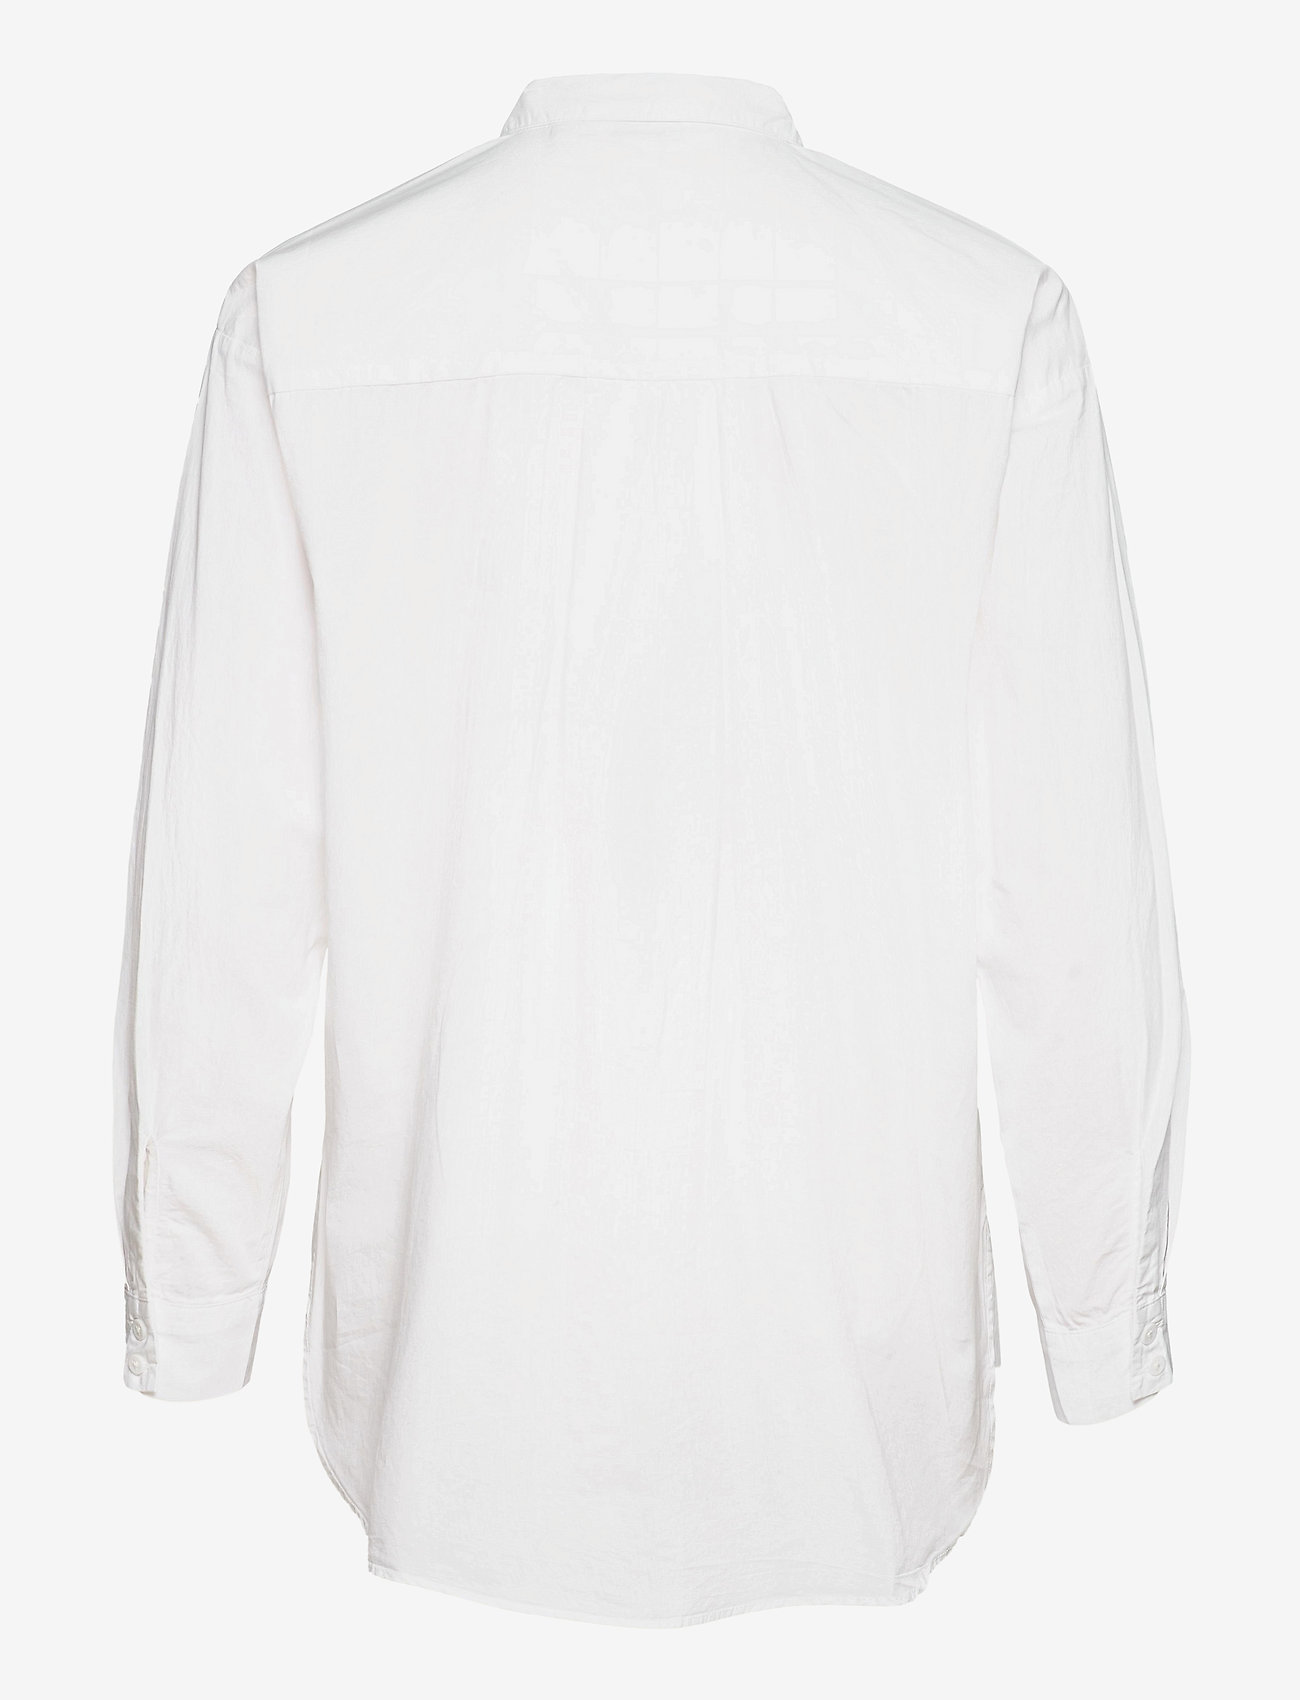 b.young - BYGAMZE SHIRT - - long-sleeved shirts - bright white - 1